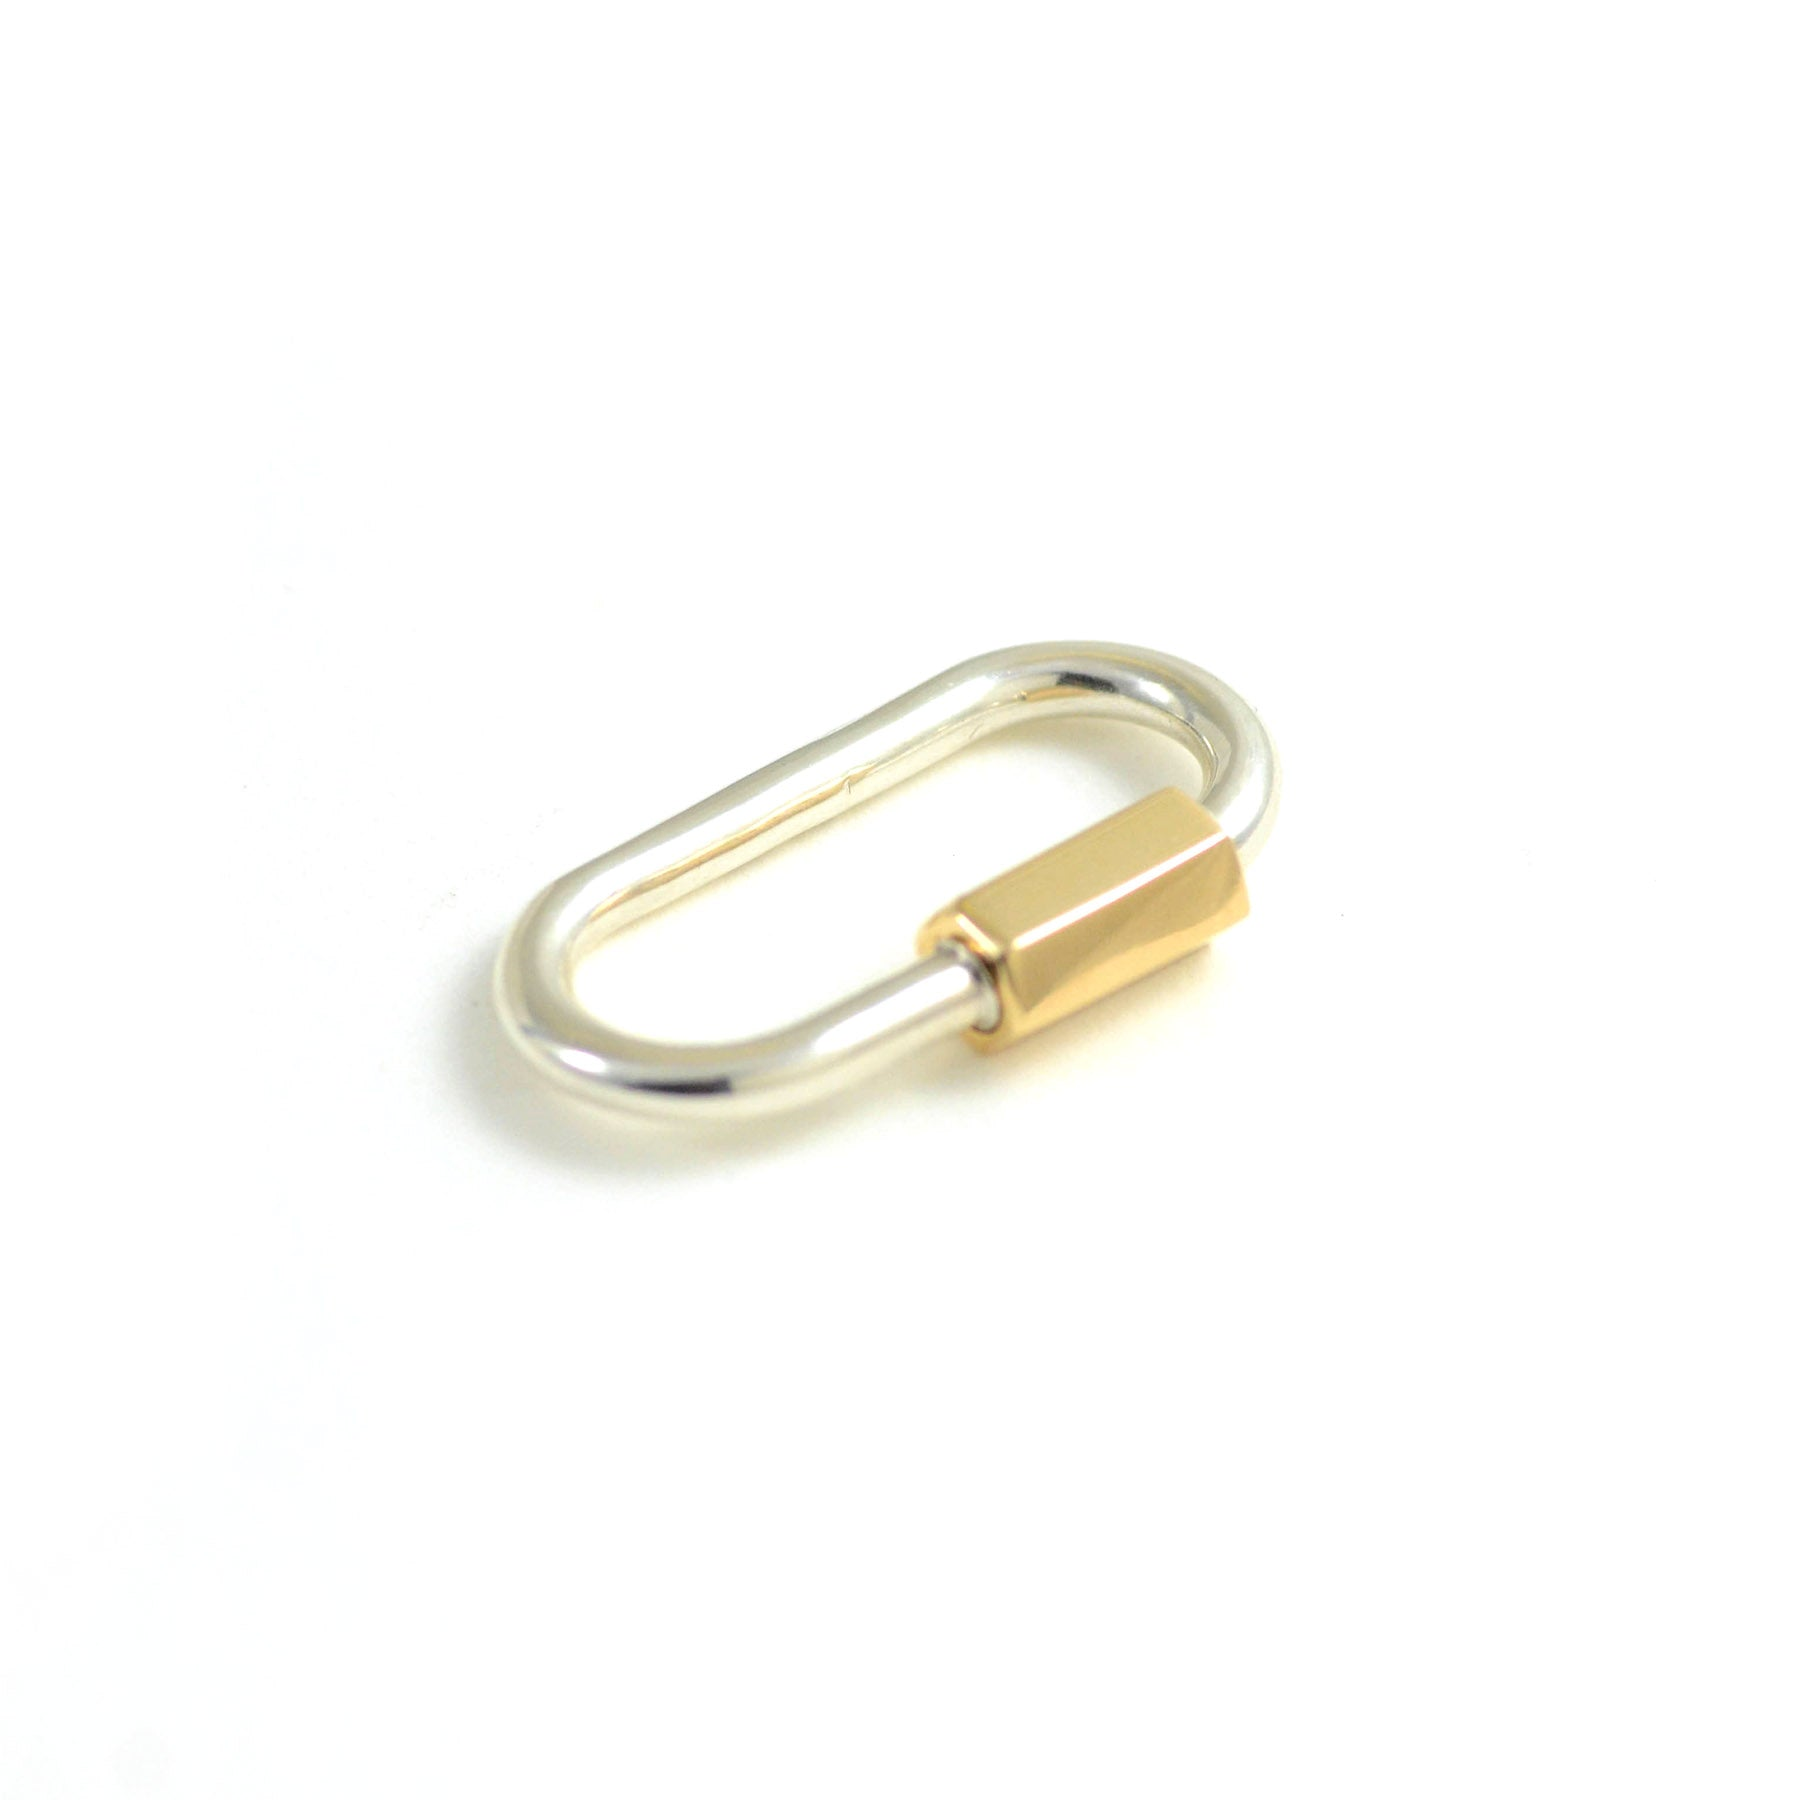 Medium Lock in White Gold with Yellow Gold Closure